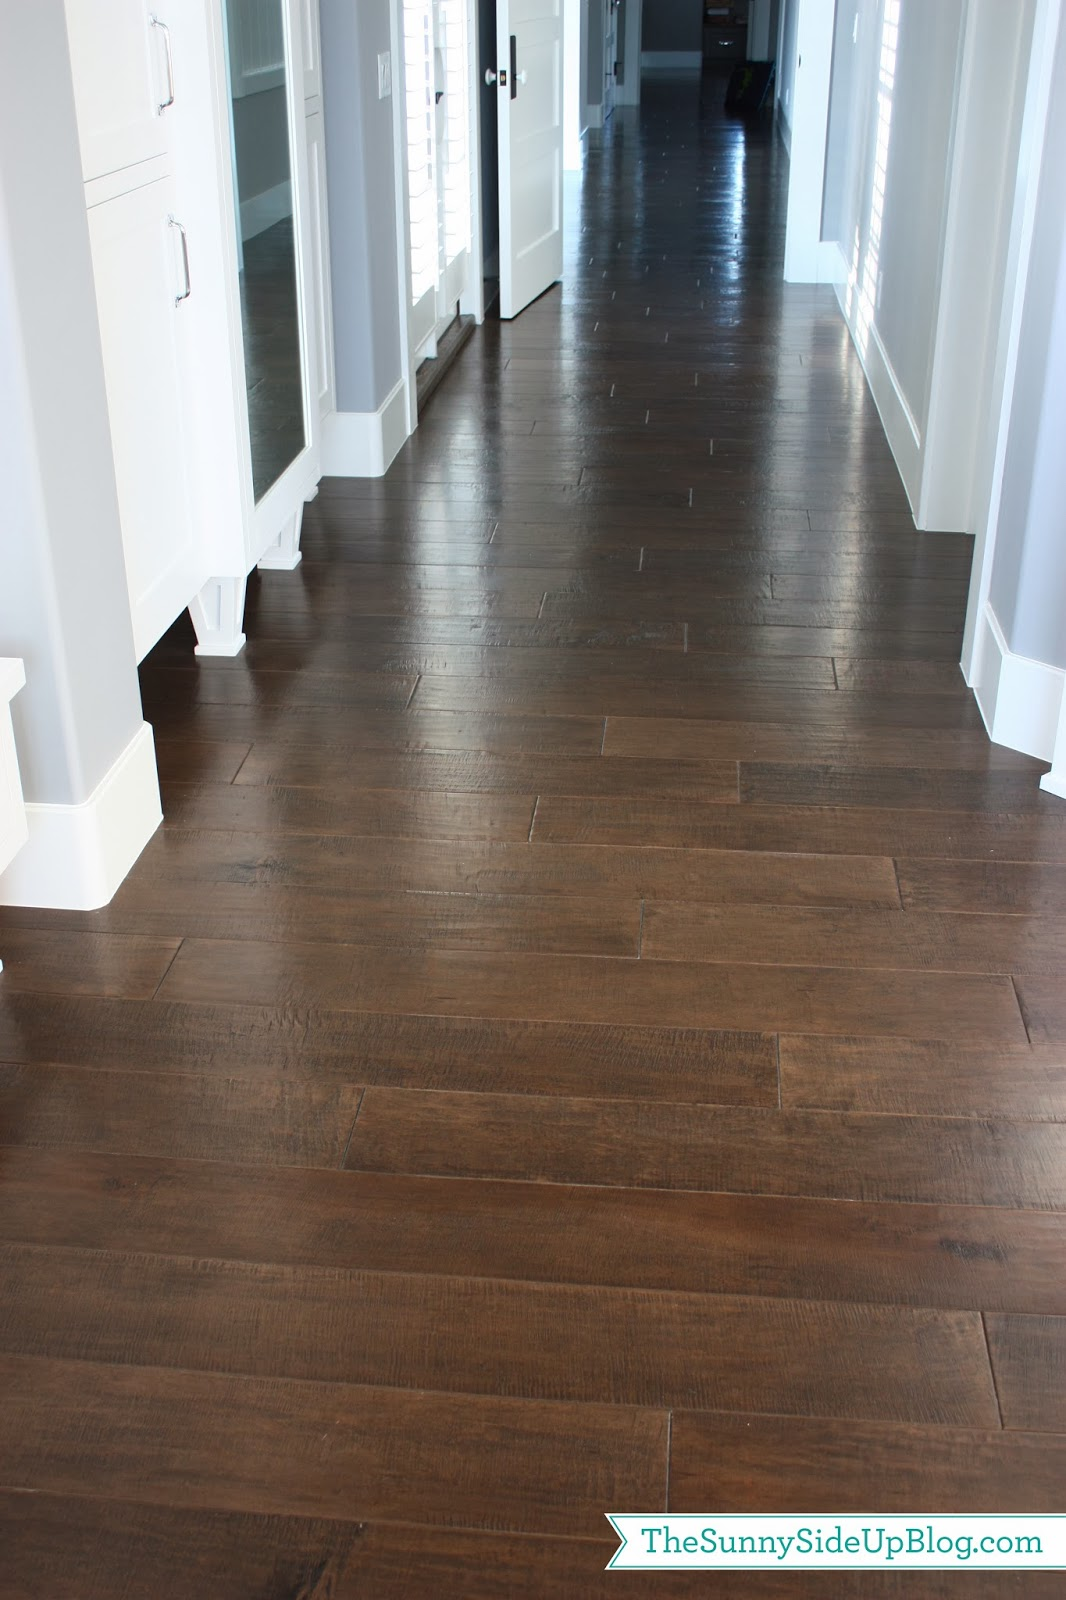 Hardwood Flooring The Sunny Side Up Blog - What to look for in laminate wood flooring